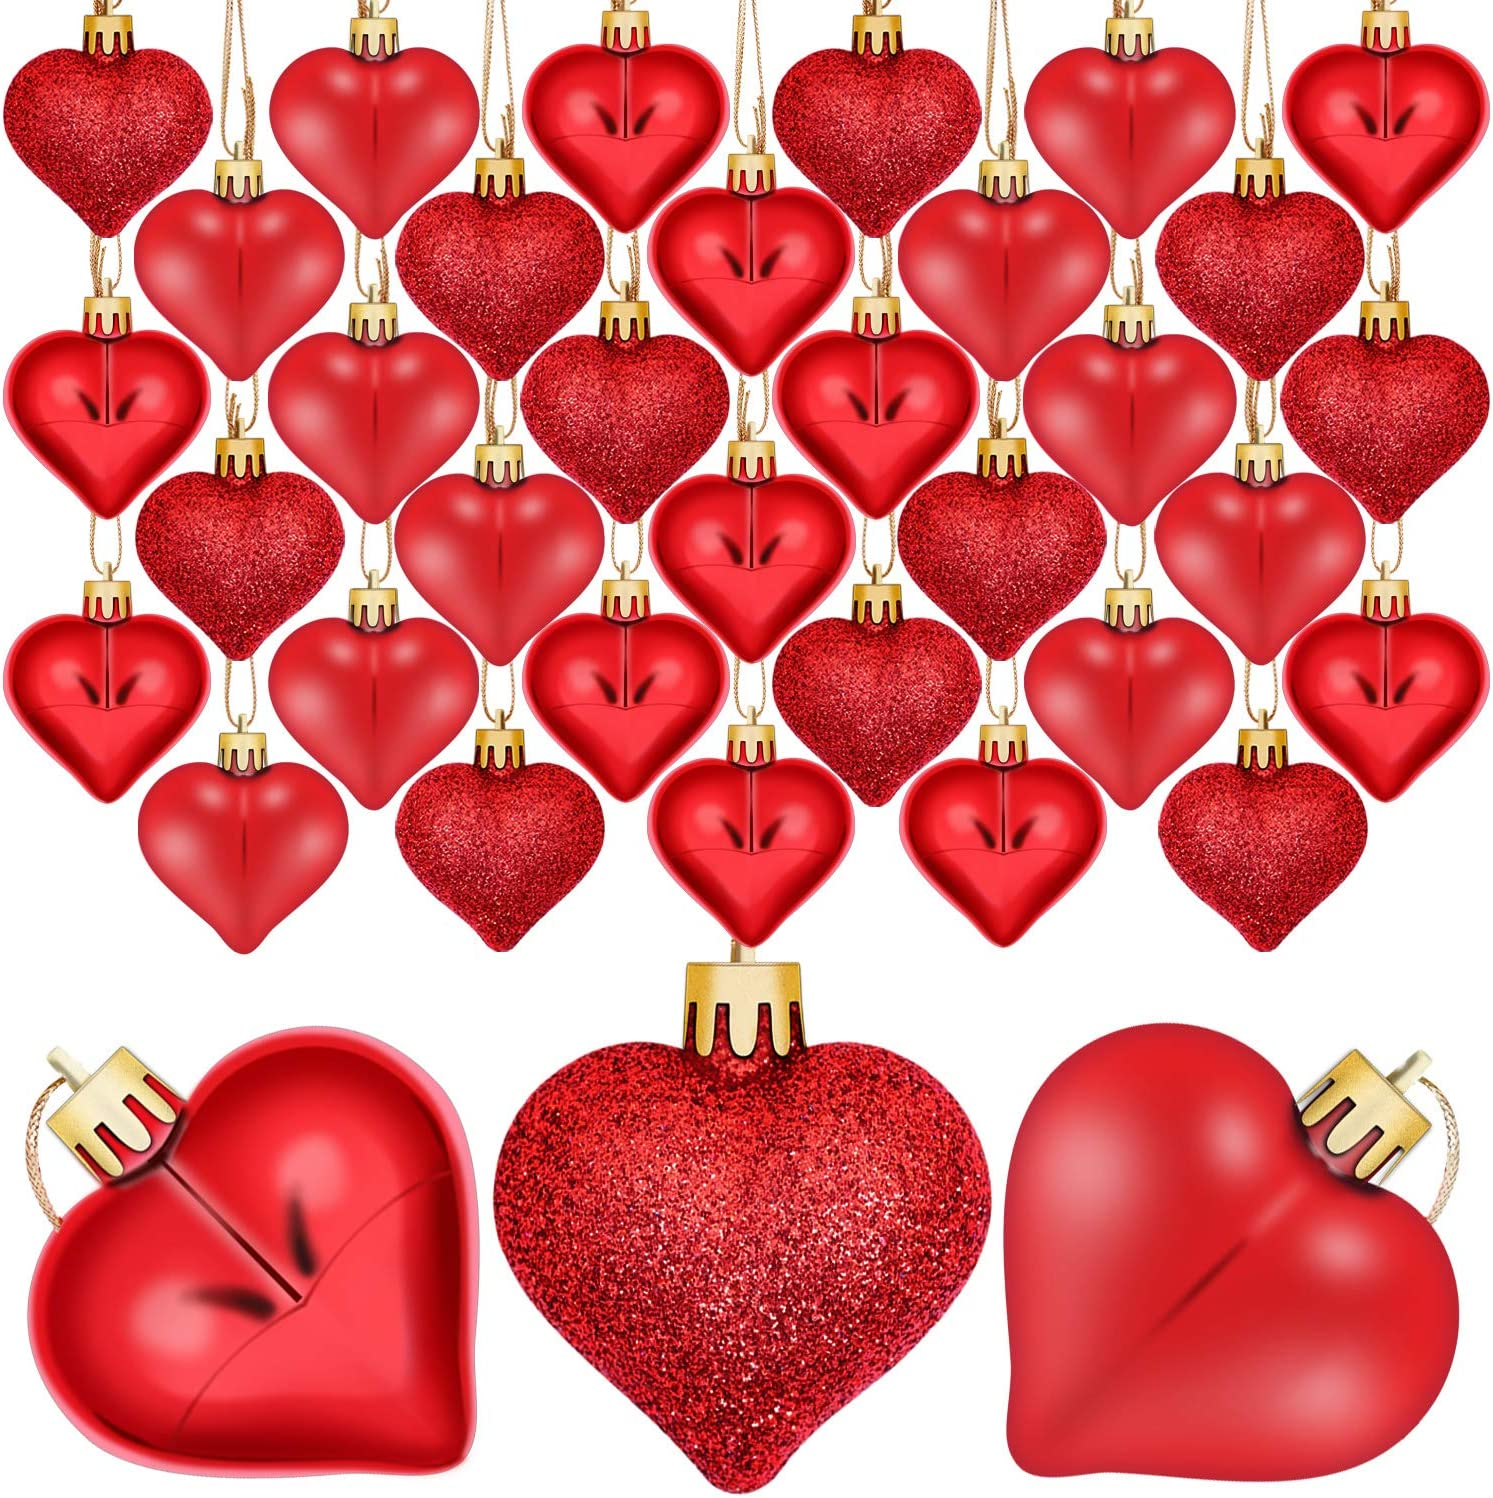 Aneco 36 Pack Valentine's Heart Baubles Heart Shaped Ornaments for Valentine's Day Decoration or Home Decor, 3 Styles